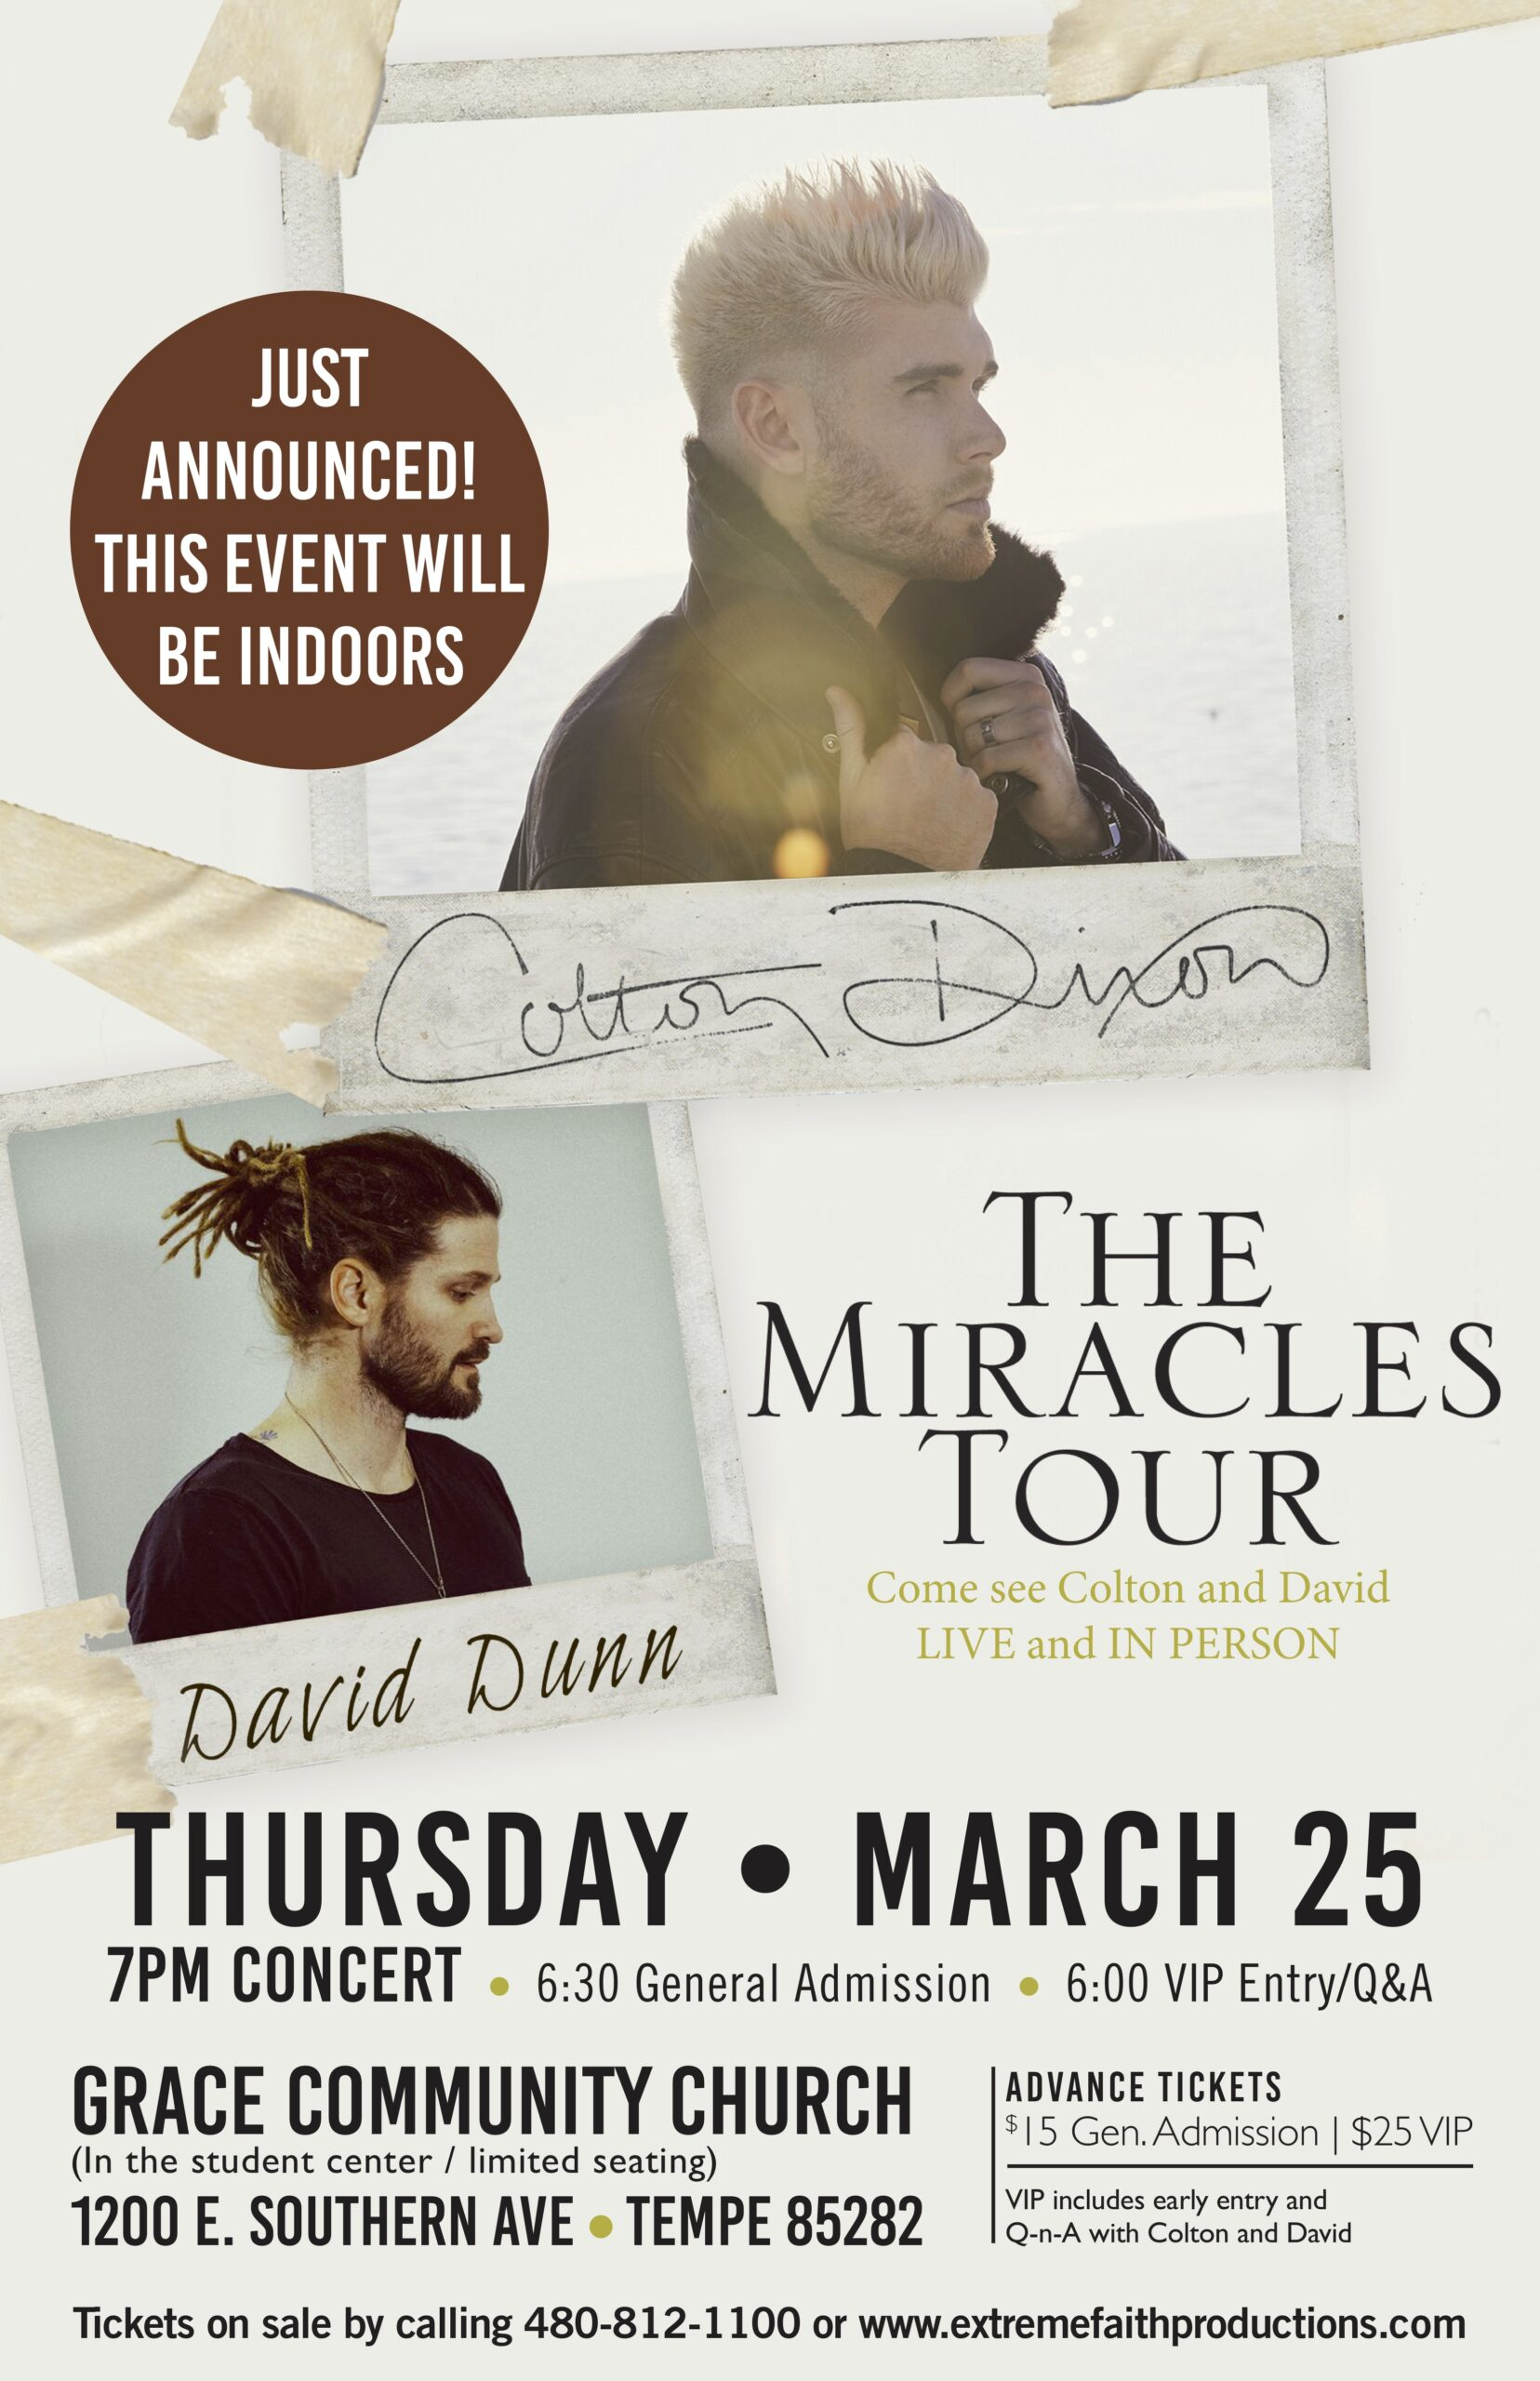 The Miracles Tour